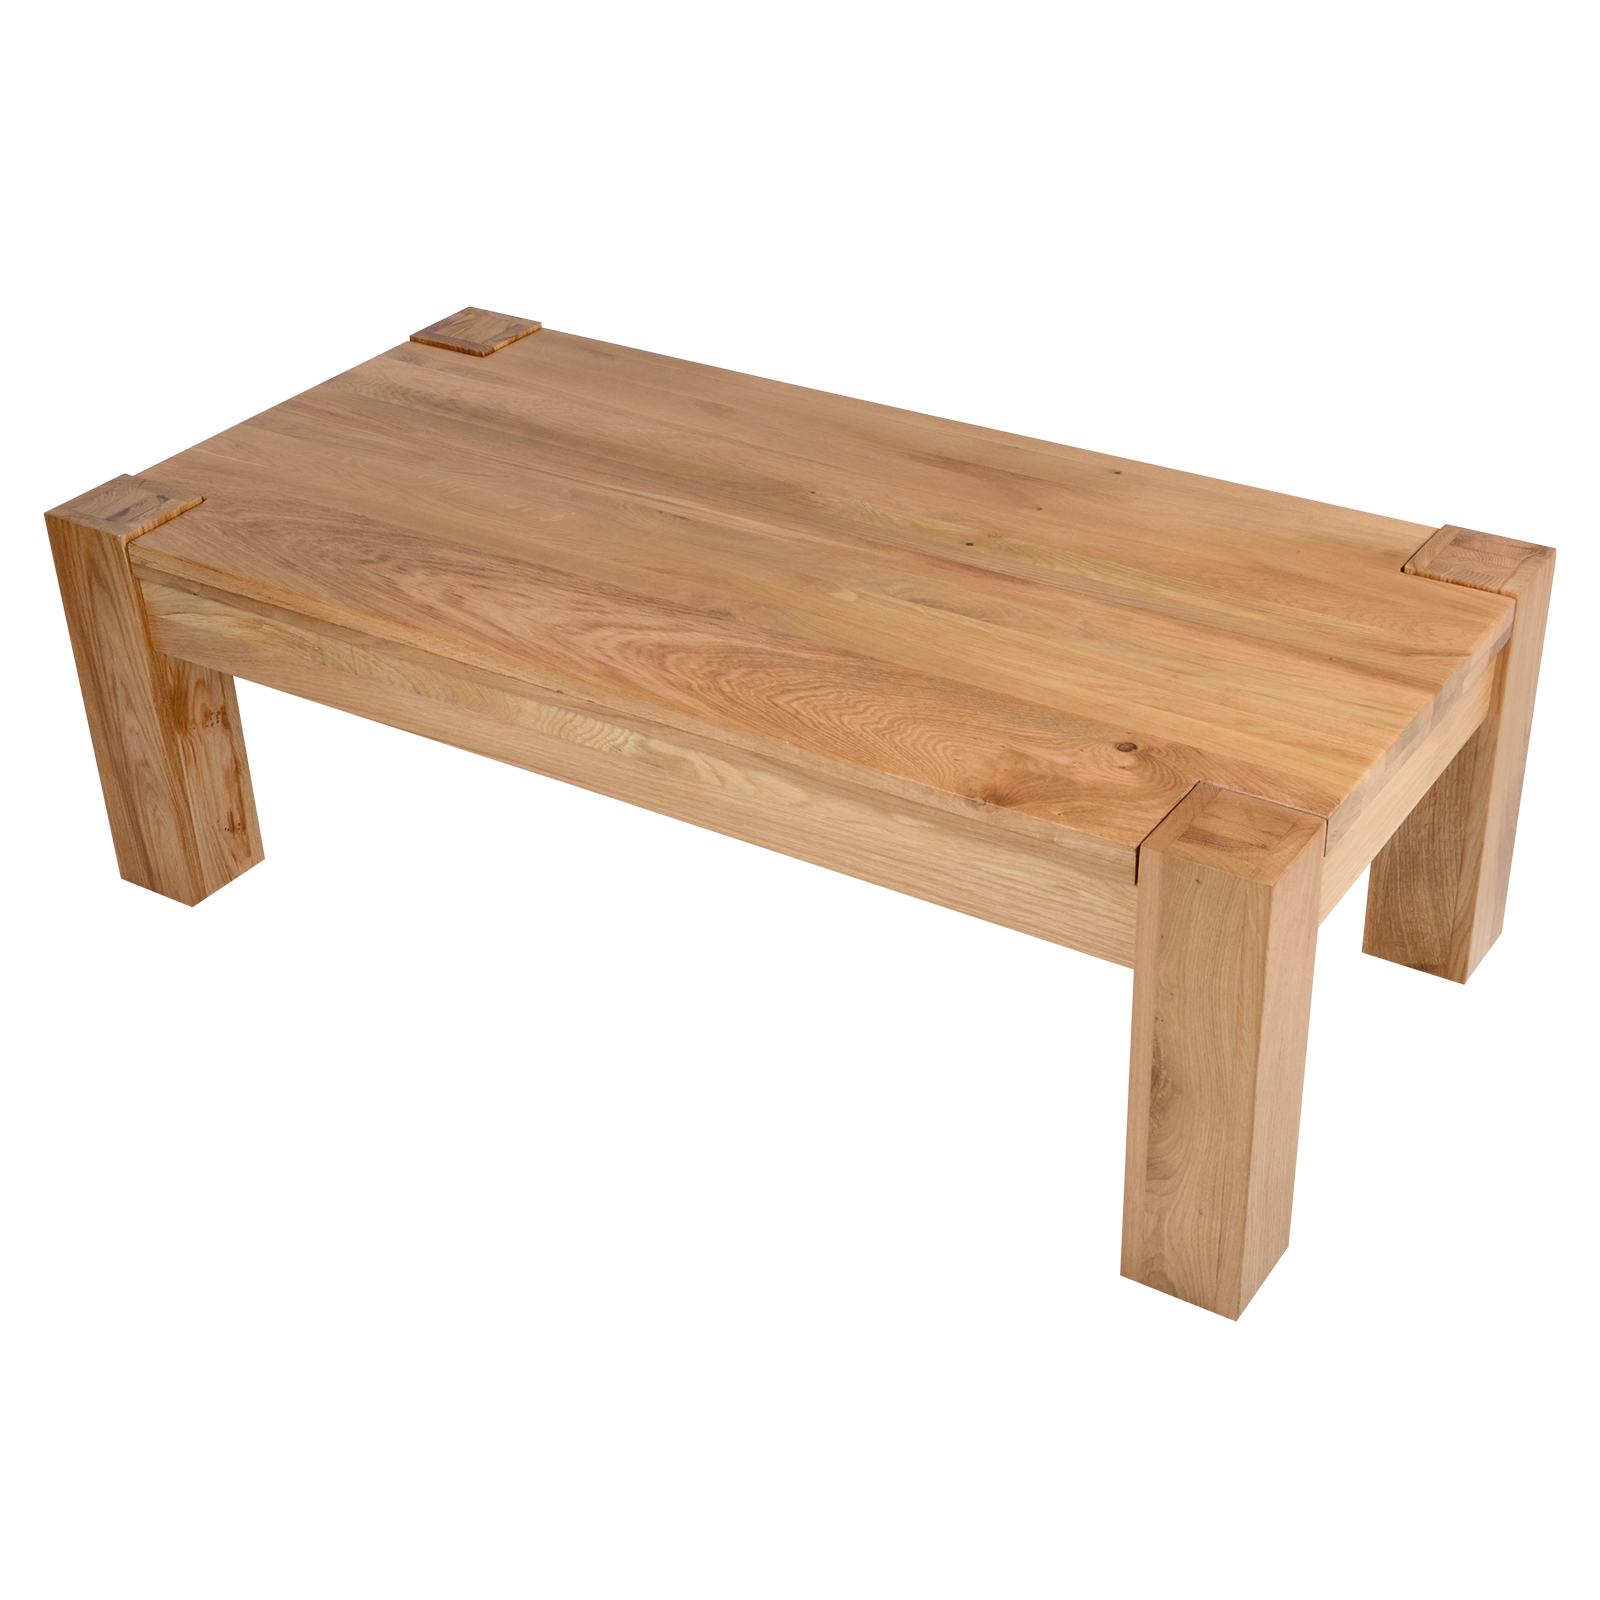 Balmoral Sold Oak Rectangular Coffee Table Chunky Wooden Living Room Furniture Ebay